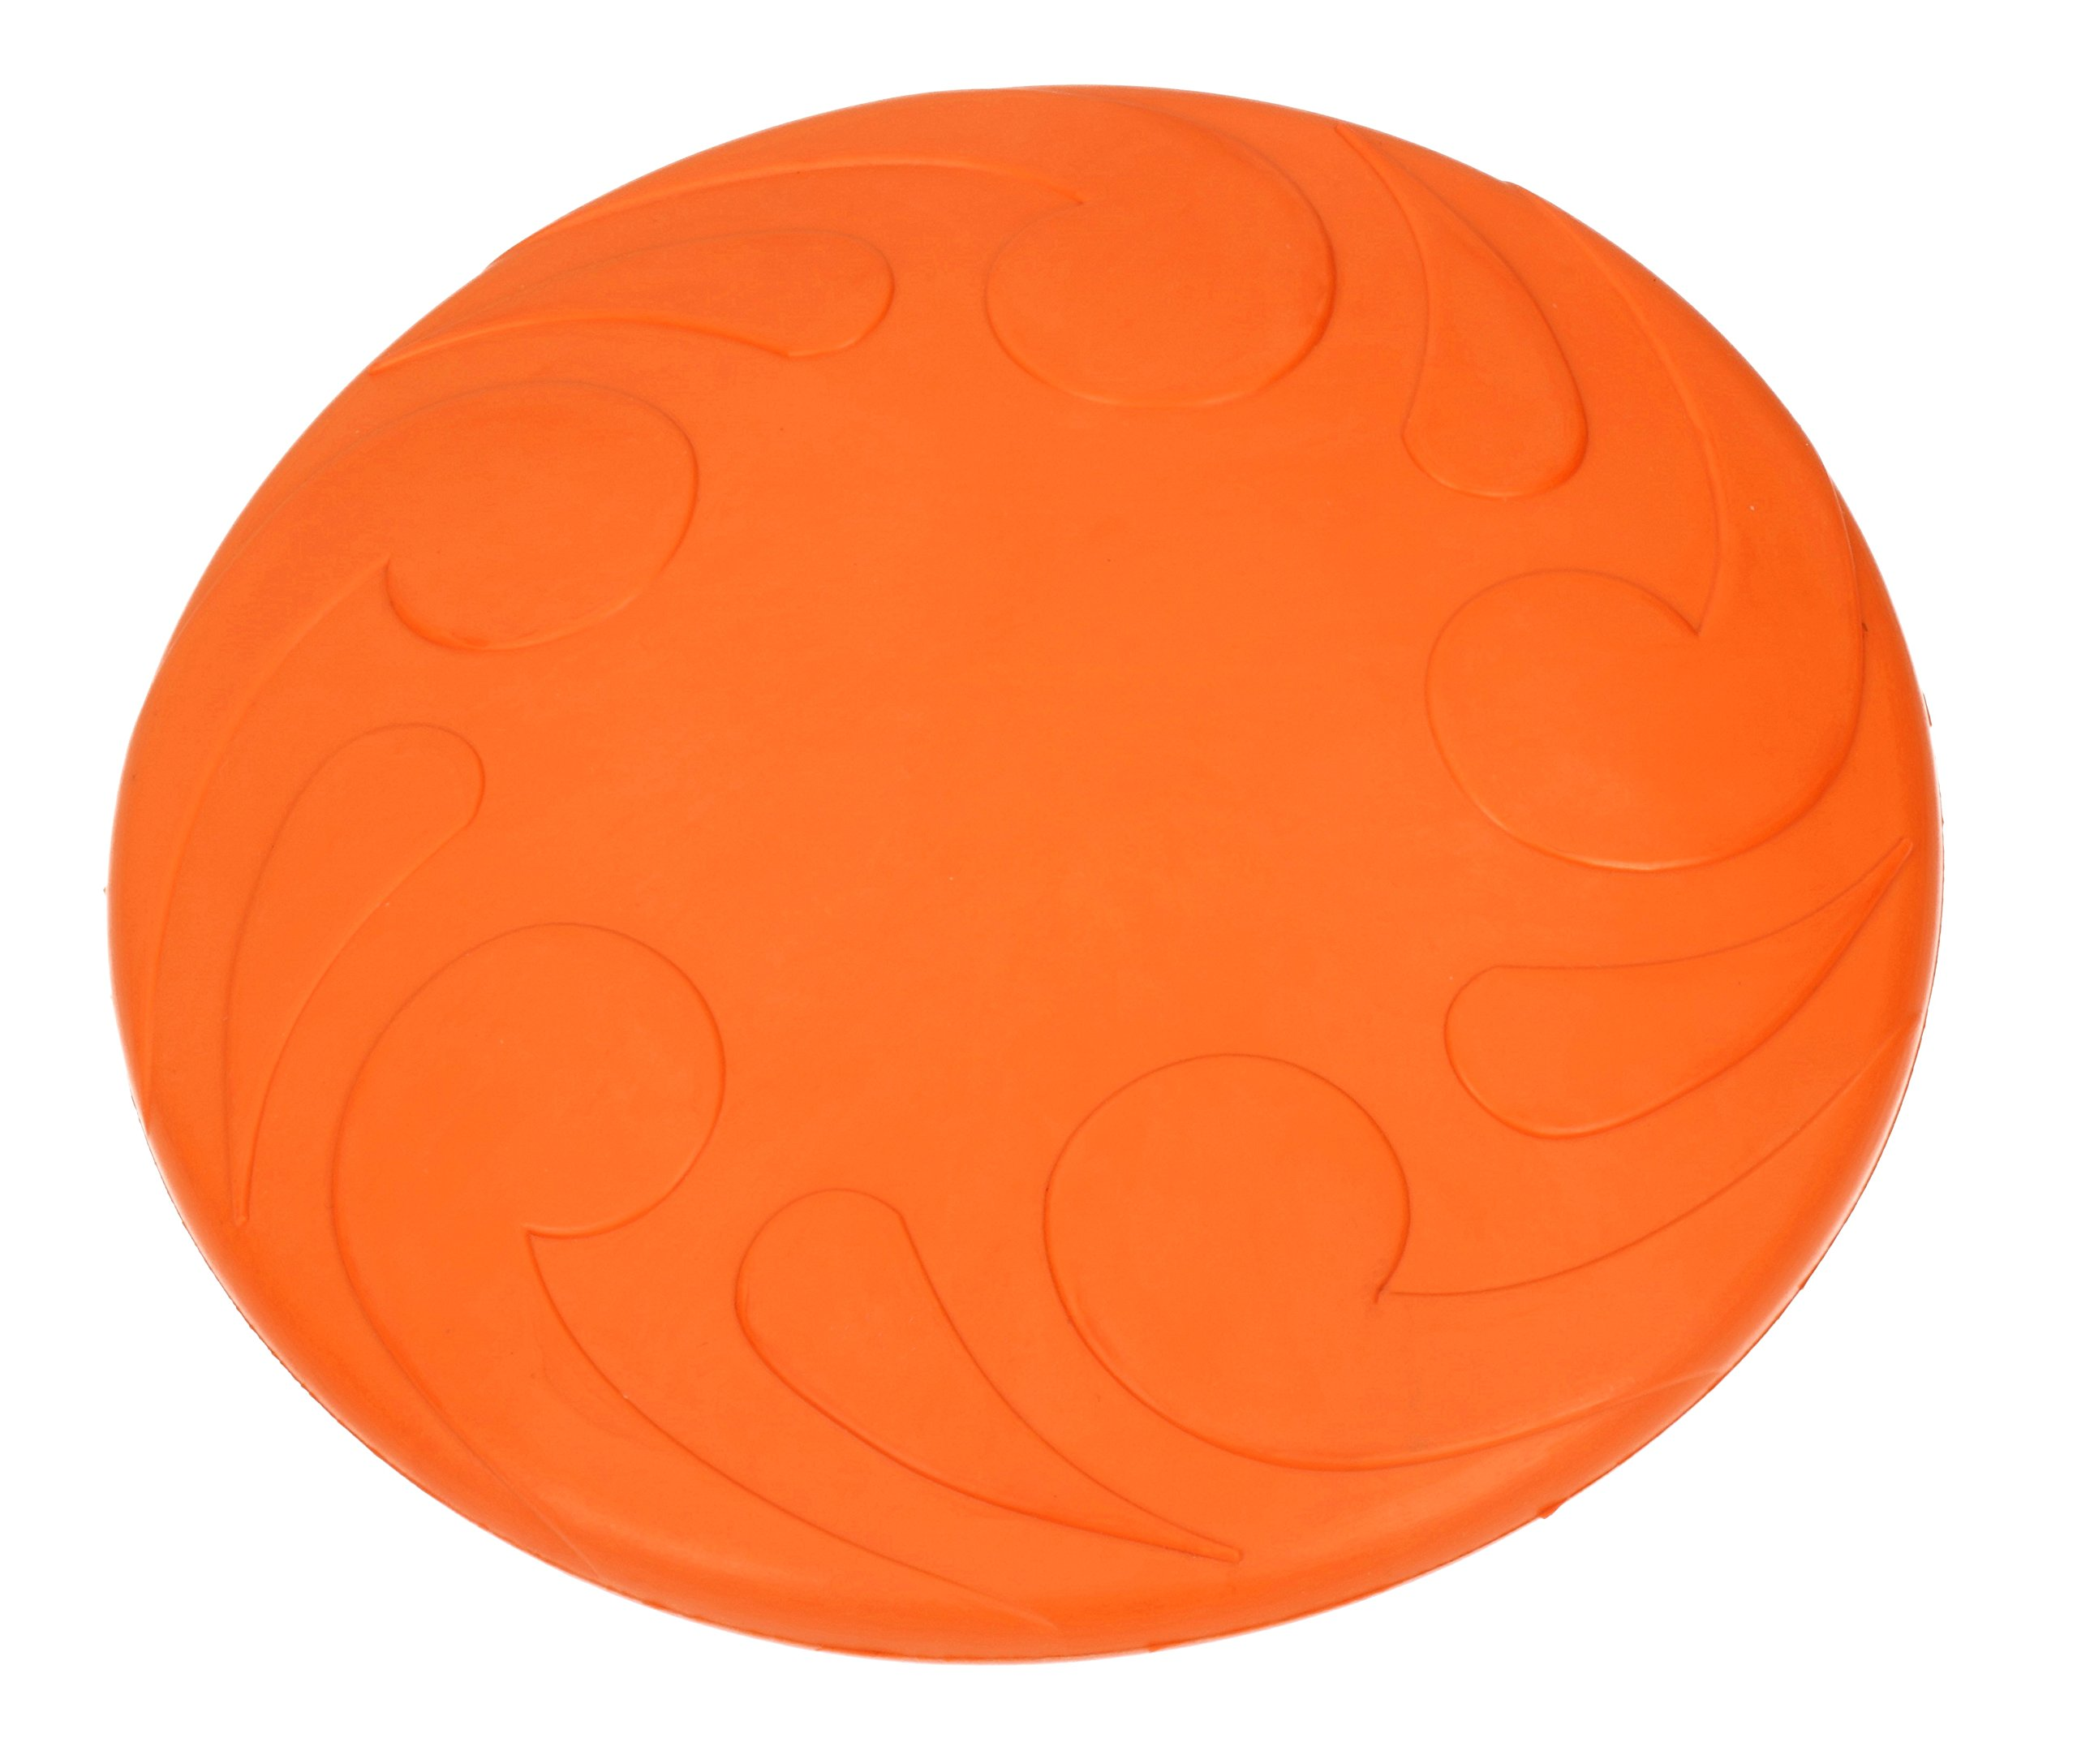 PlayfulSpirit Dog Frisbee: Durable Rubber Flying Disc for Medium to Large Size Dogs, Safe Catch and Great Fetch Toy, Interactive Land and Water Dog Toy for Exercise and Fun Playtime